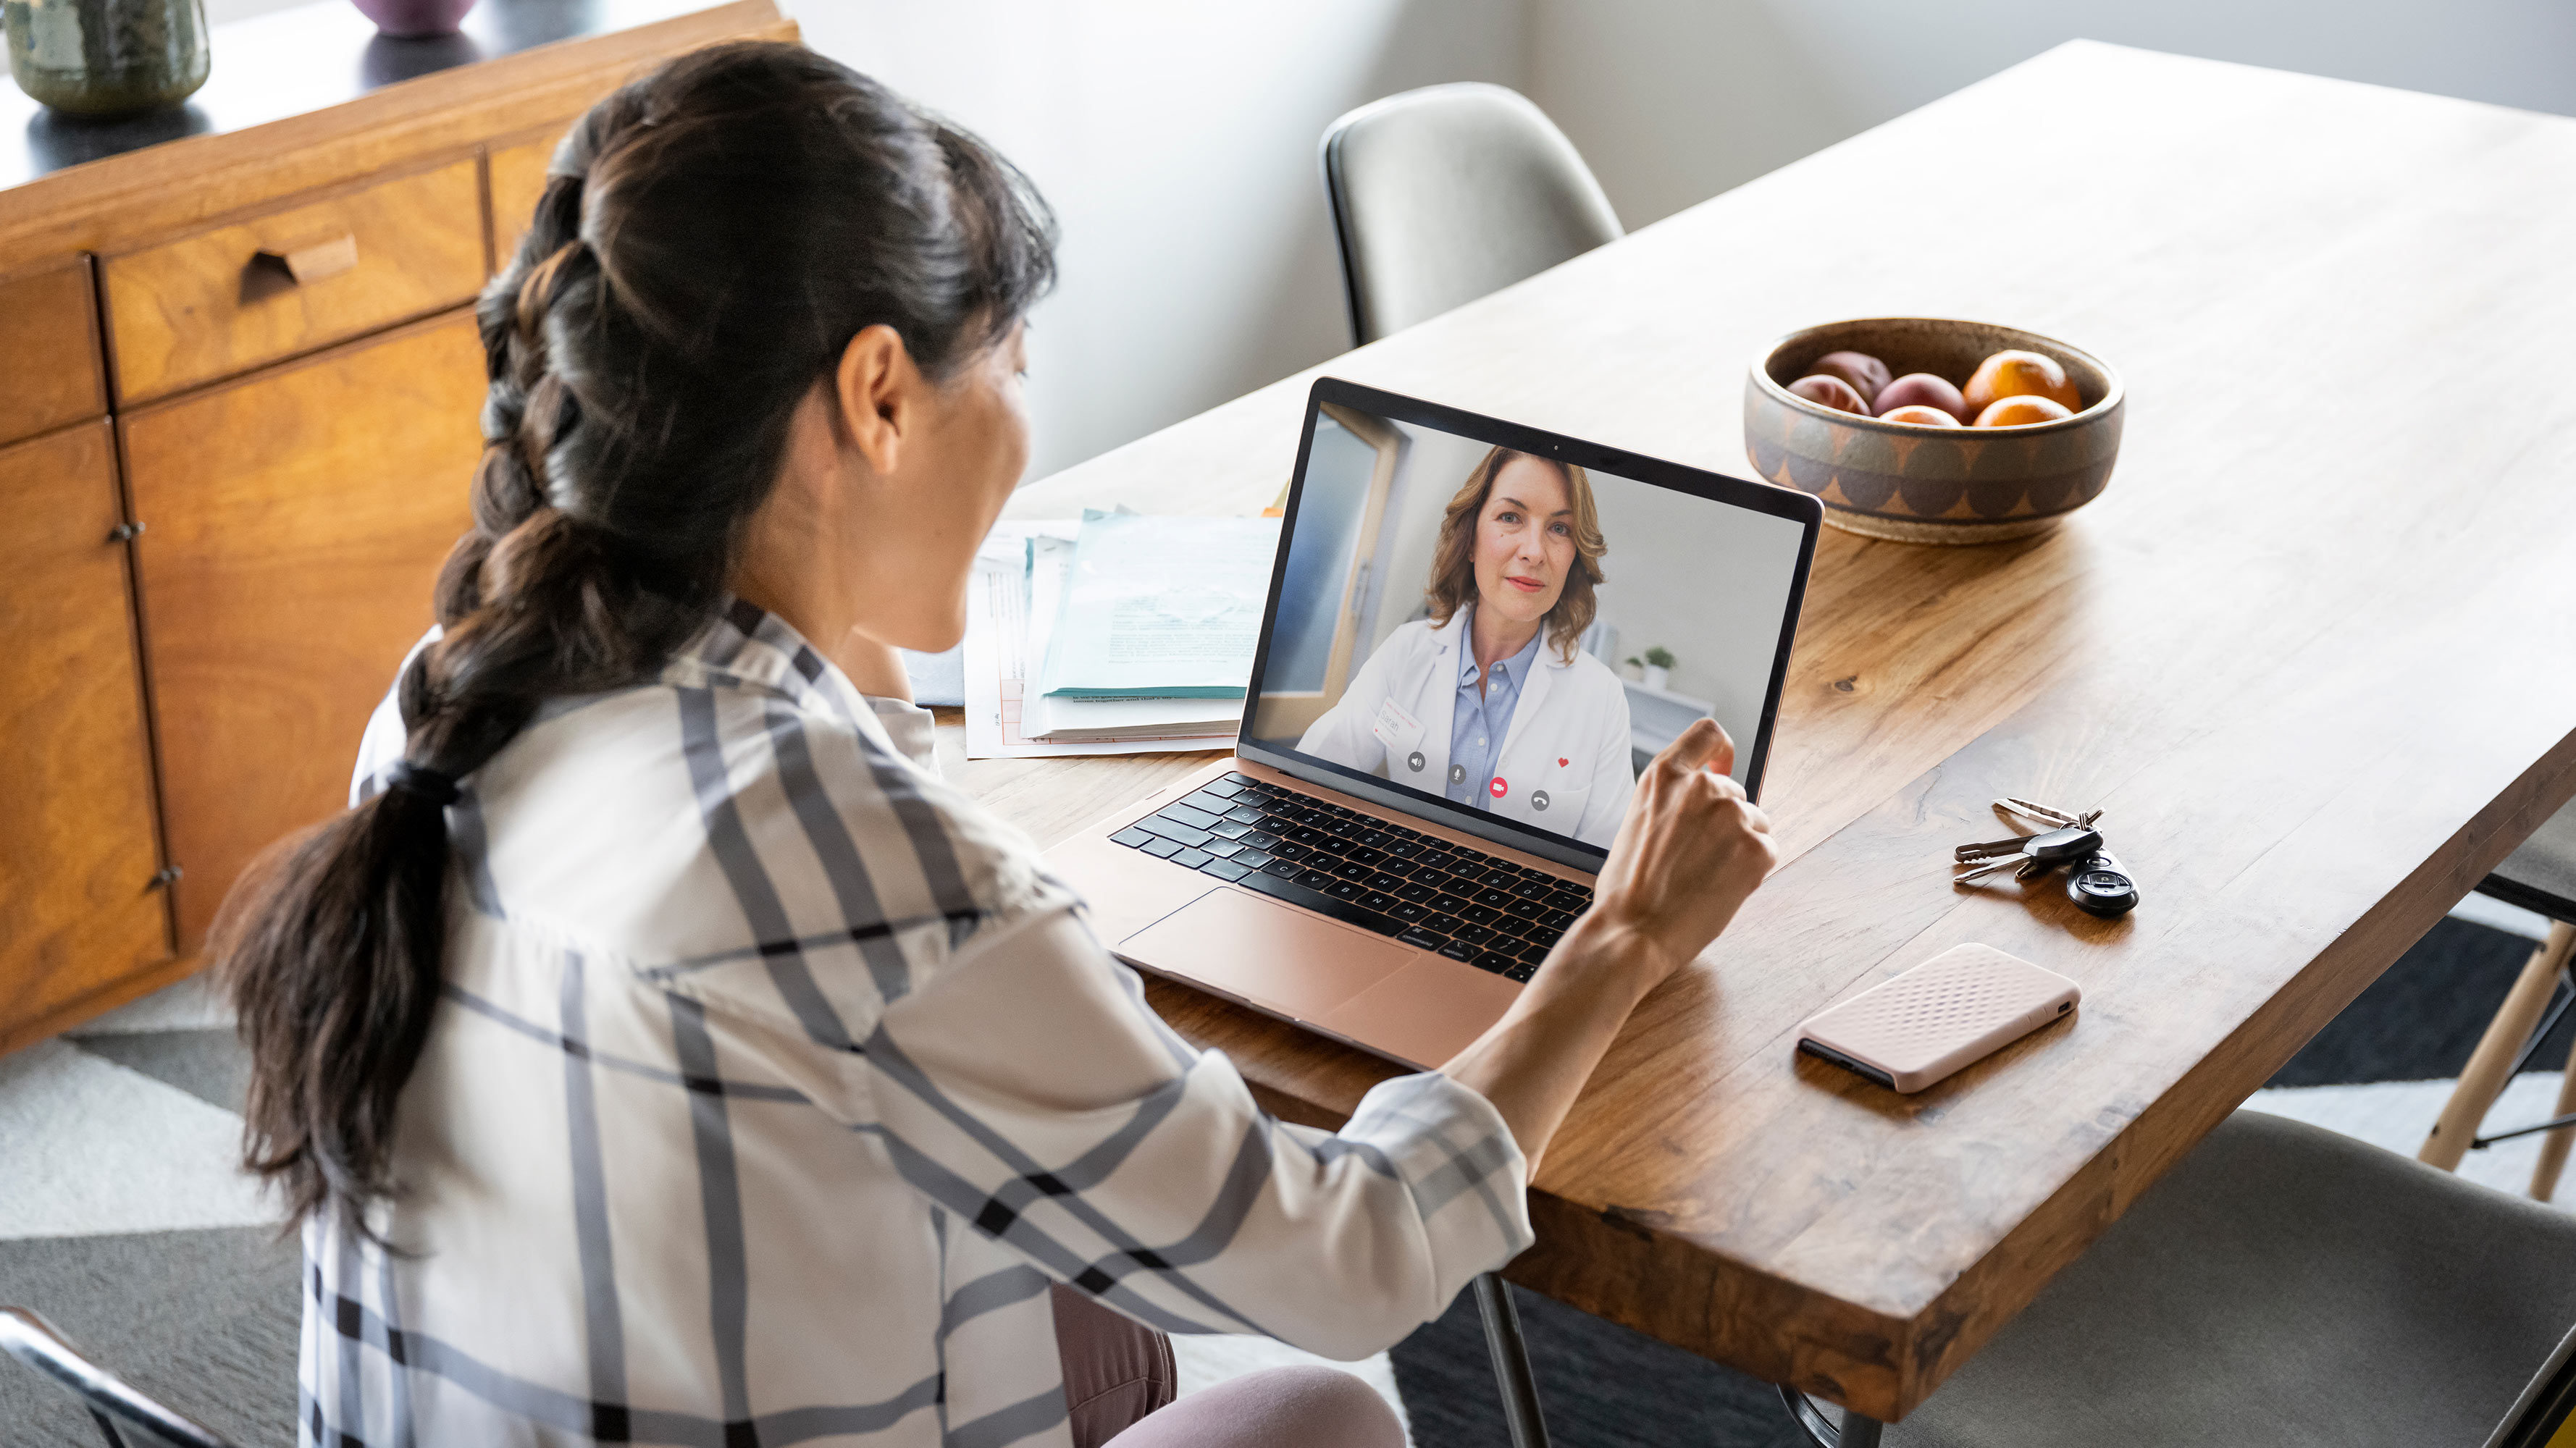 A female patient is seen in her kitchen, conferencing on a video chat with her health care provider.